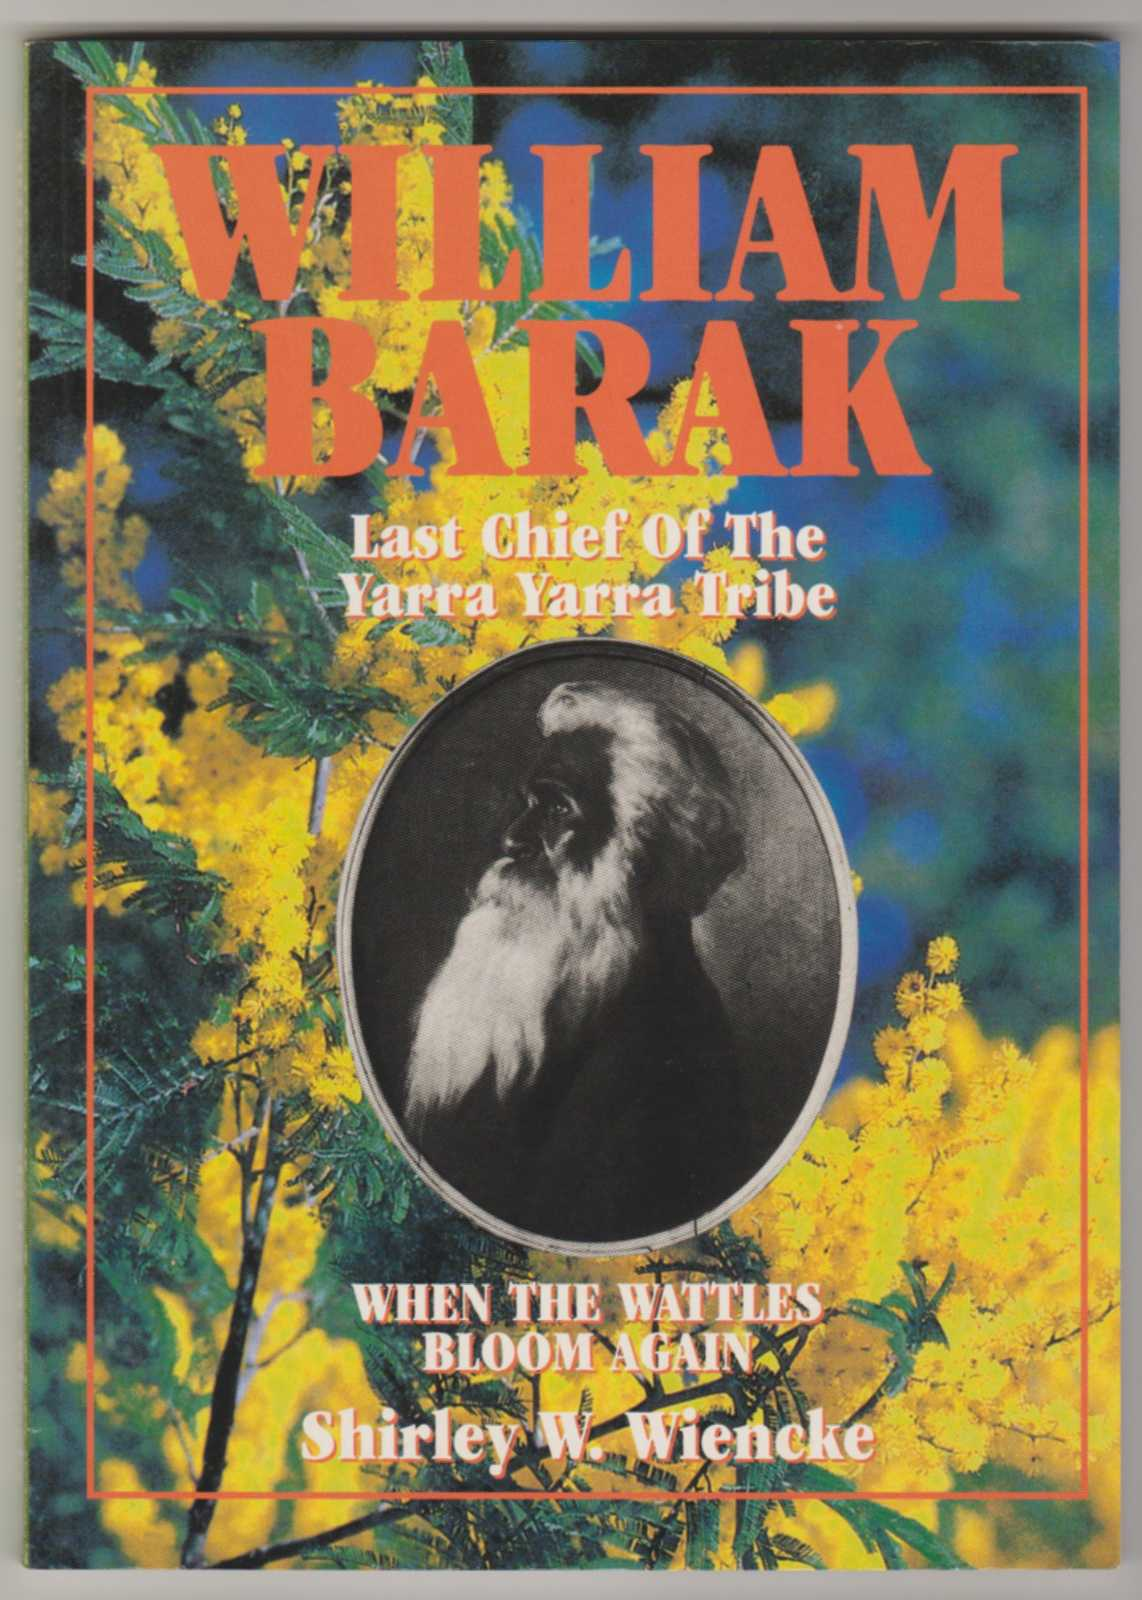 Image for WHEN THE WATTLES BLOOM AGAIN: The life and times of William Barak Last Chief of the Yarra Yarra Tribe (Signed Copy)